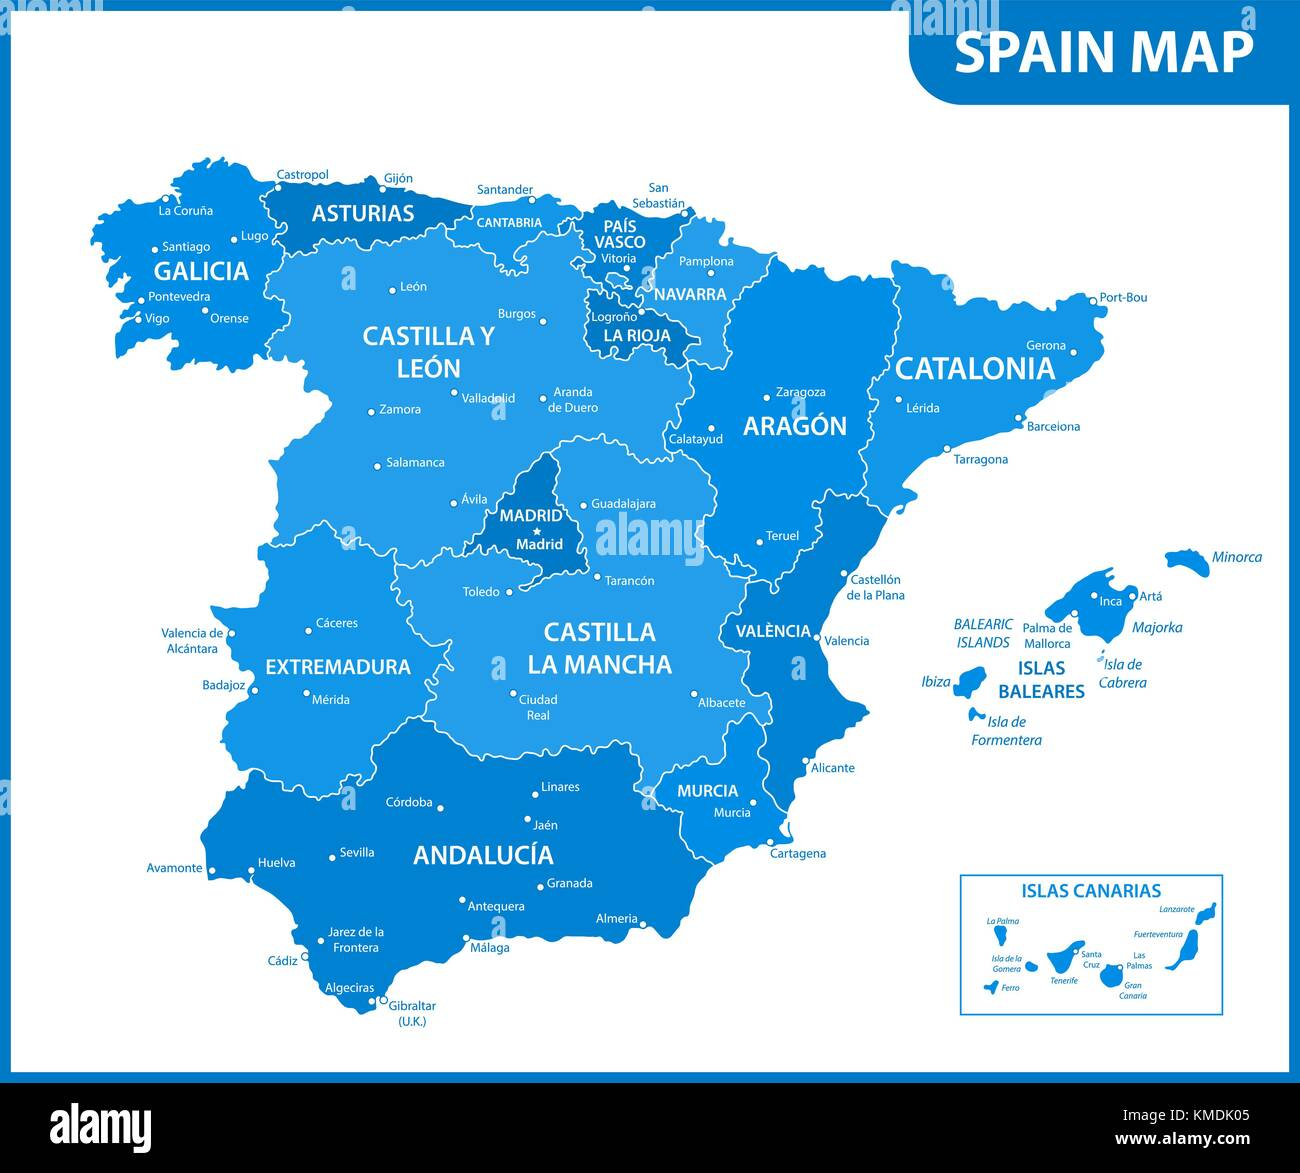 Detailed Map Of Spain.The Detailed Map Of The Spain With Regions Or States And Cities